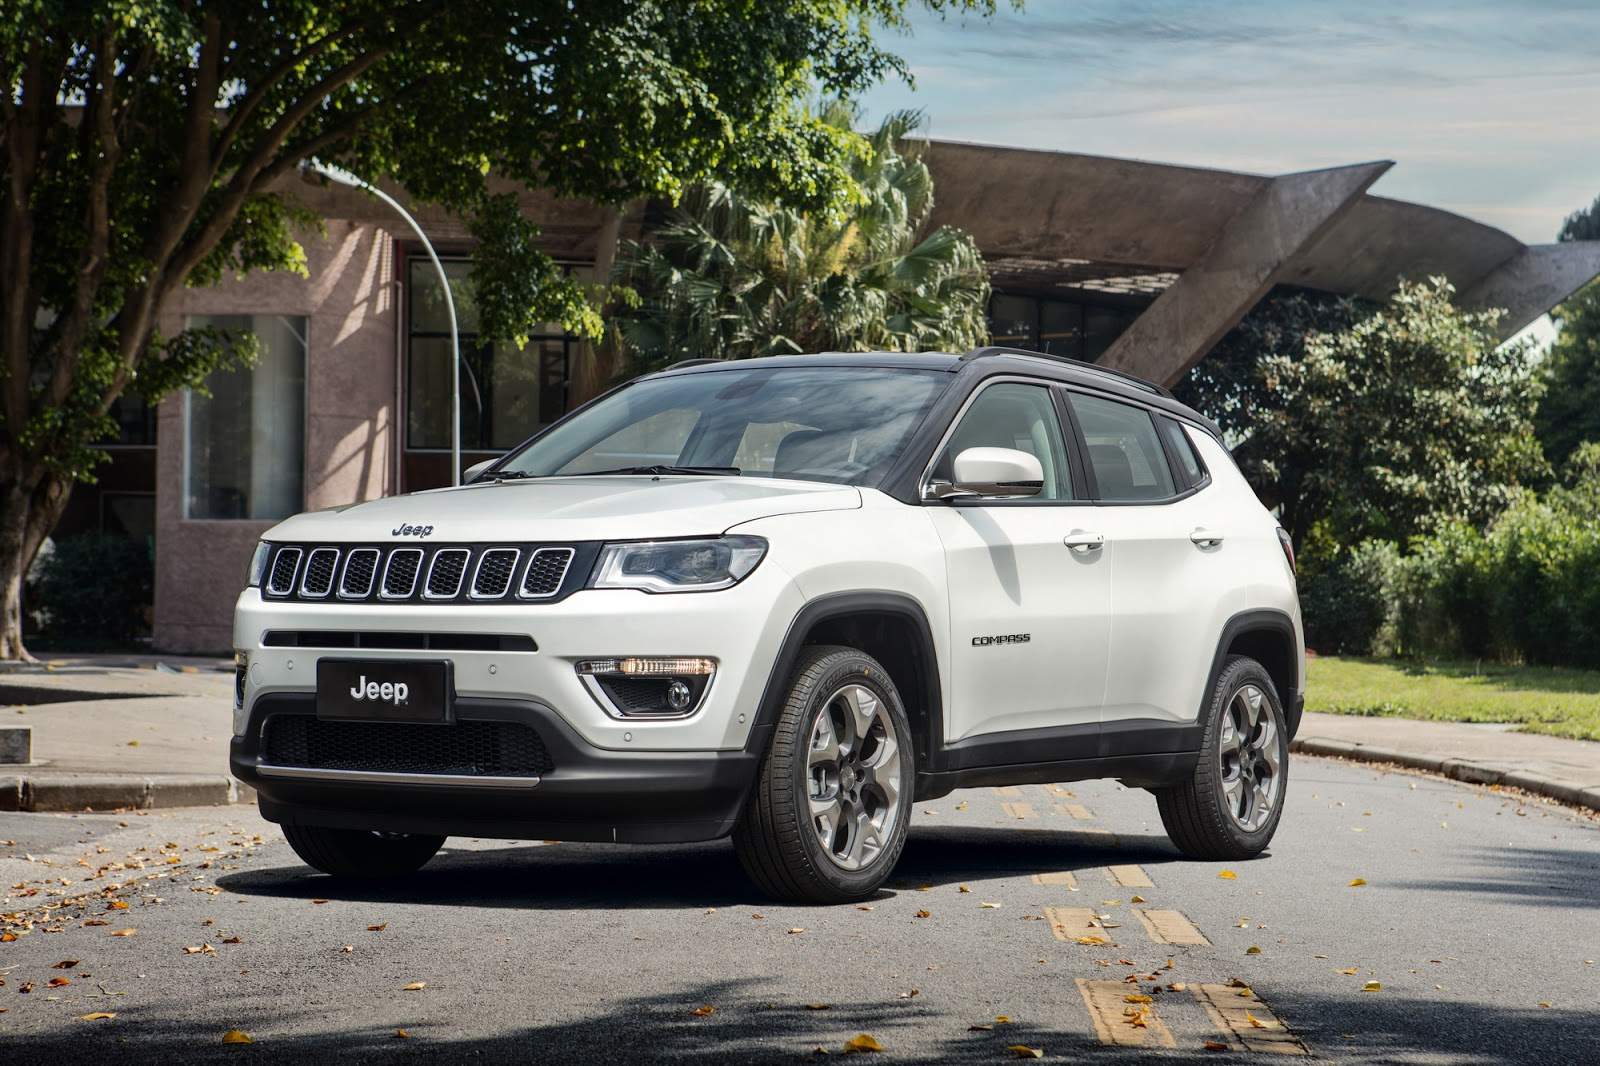 2017 Jeep Compass Priced From $20,995 In The United States